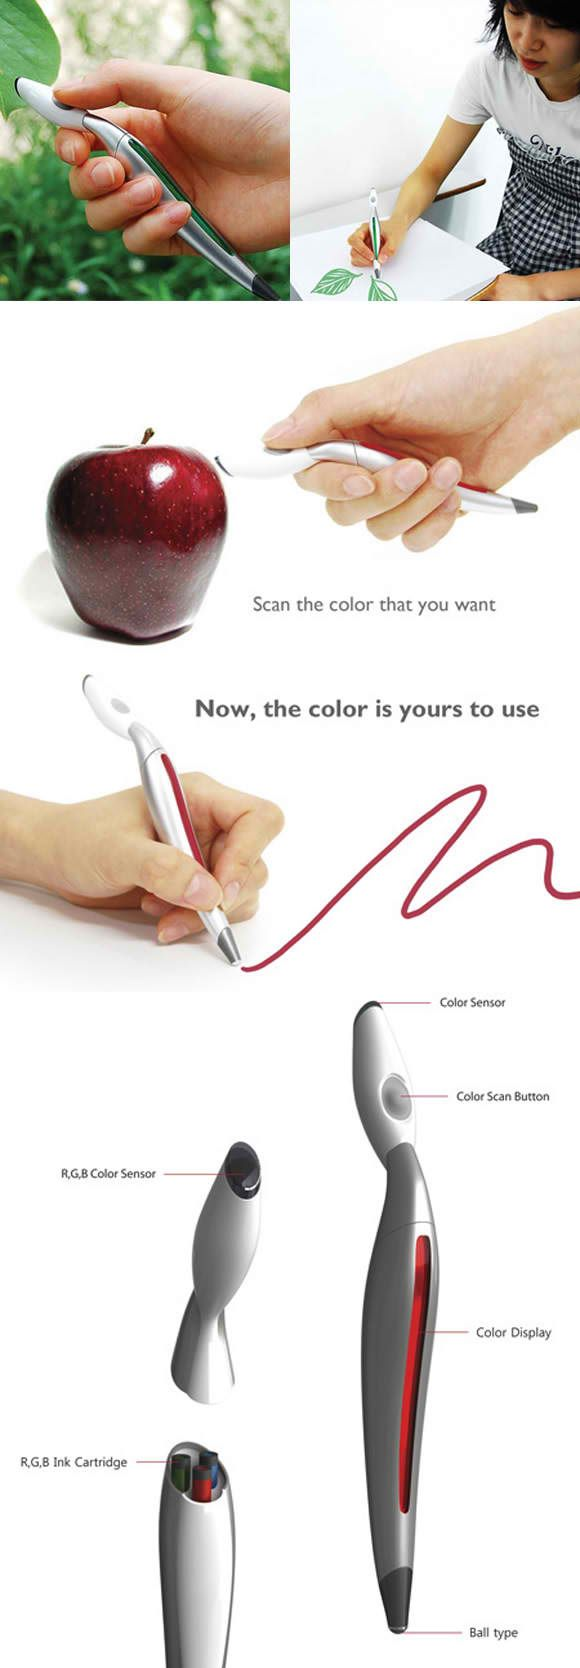 A marker that scans the color of an object AND THEN draws in the exact color.